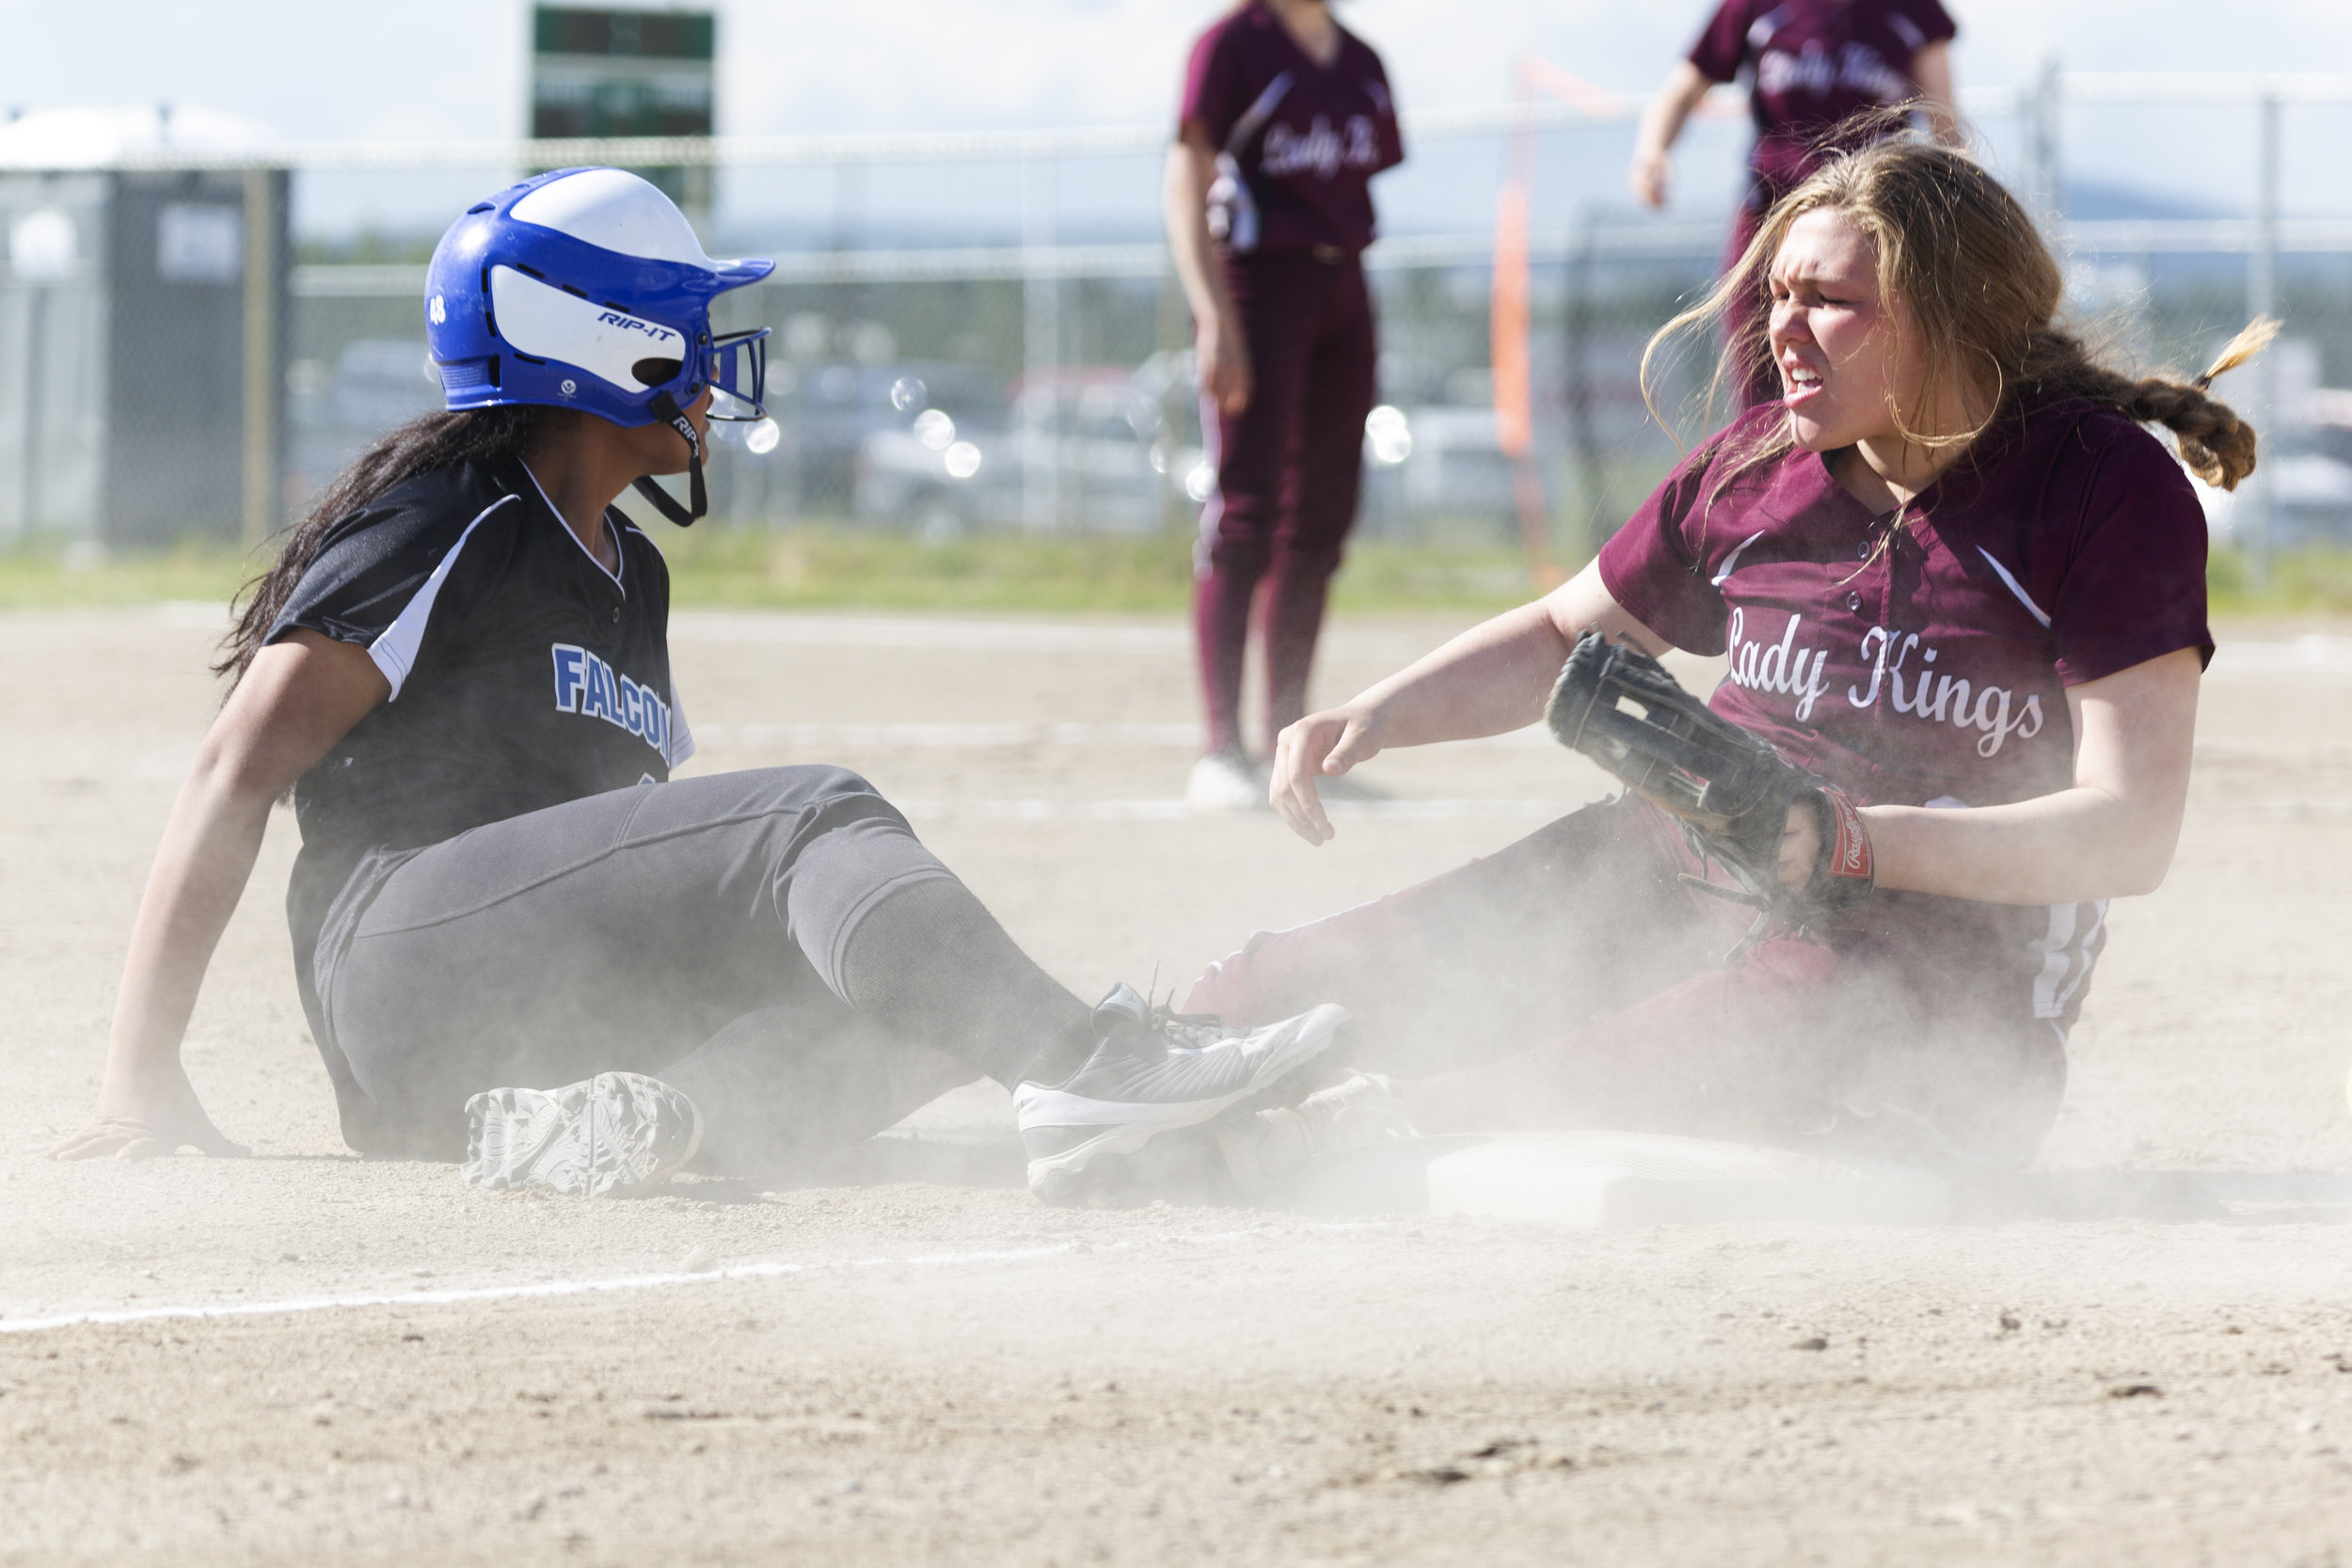 #14 Mariah Tanuvasa Tuvaifale looks to the umpire for his call after sliding safely onto third base in the Thunder Mountain vs Ketchikan champion game in the ASAA Division II state softball tournament in Fairbanks on Saturday, June 2nd. Sarah Manriquez/Juneau Empire